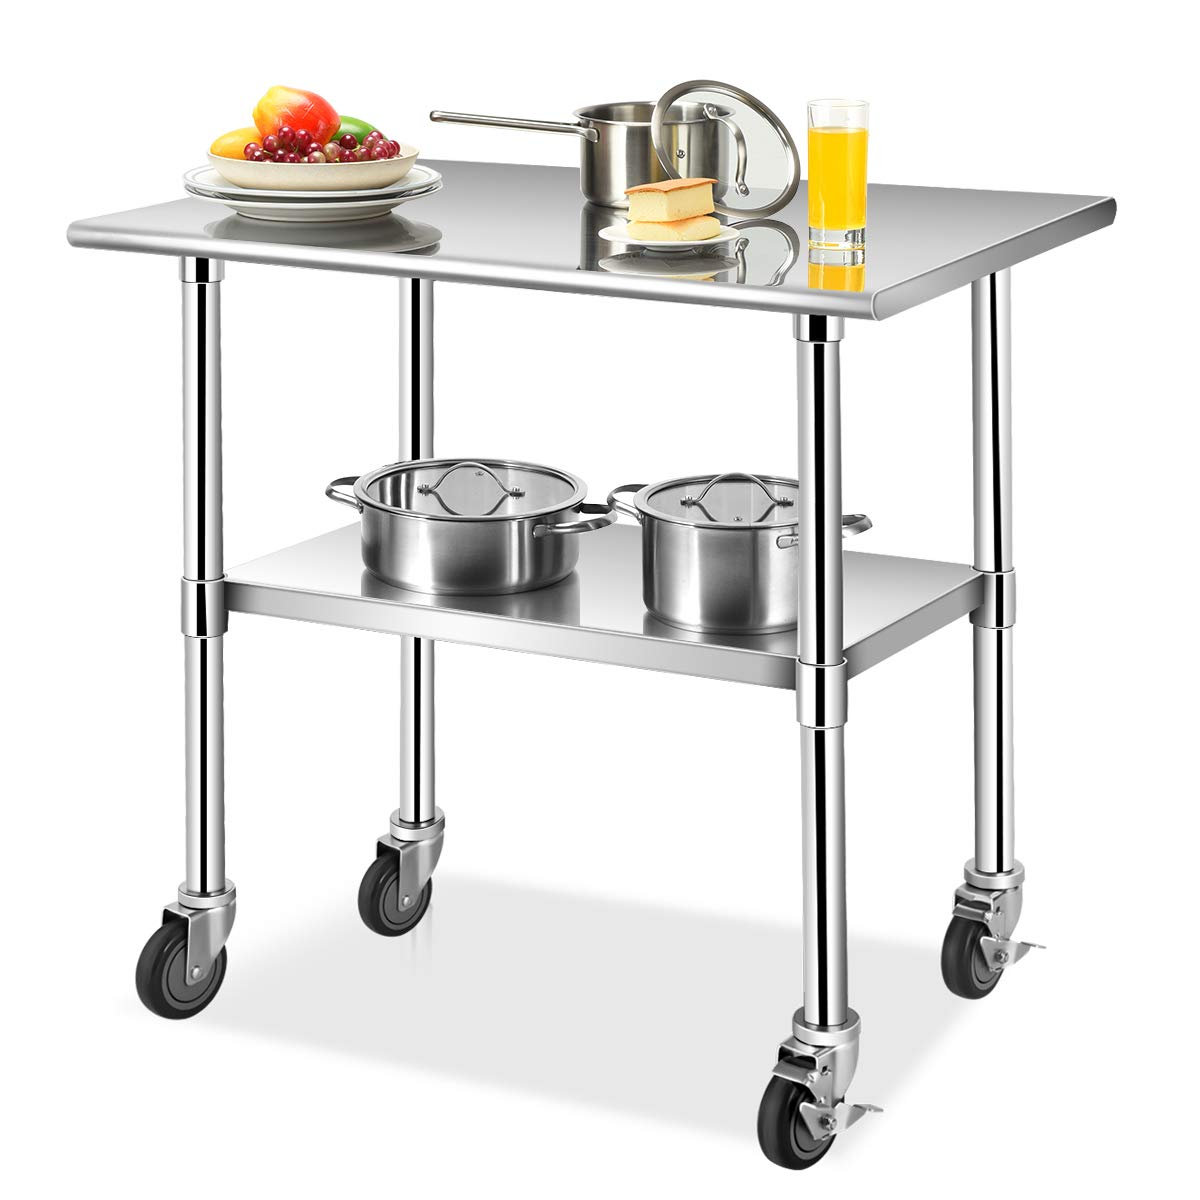 Giantex 36In×24In Kitchen Prep Table NSF Stainless Steel Work Table with Adjustable Shelf, Commercial-Grade Table with Wheels and Scratch-Resistant Table Top